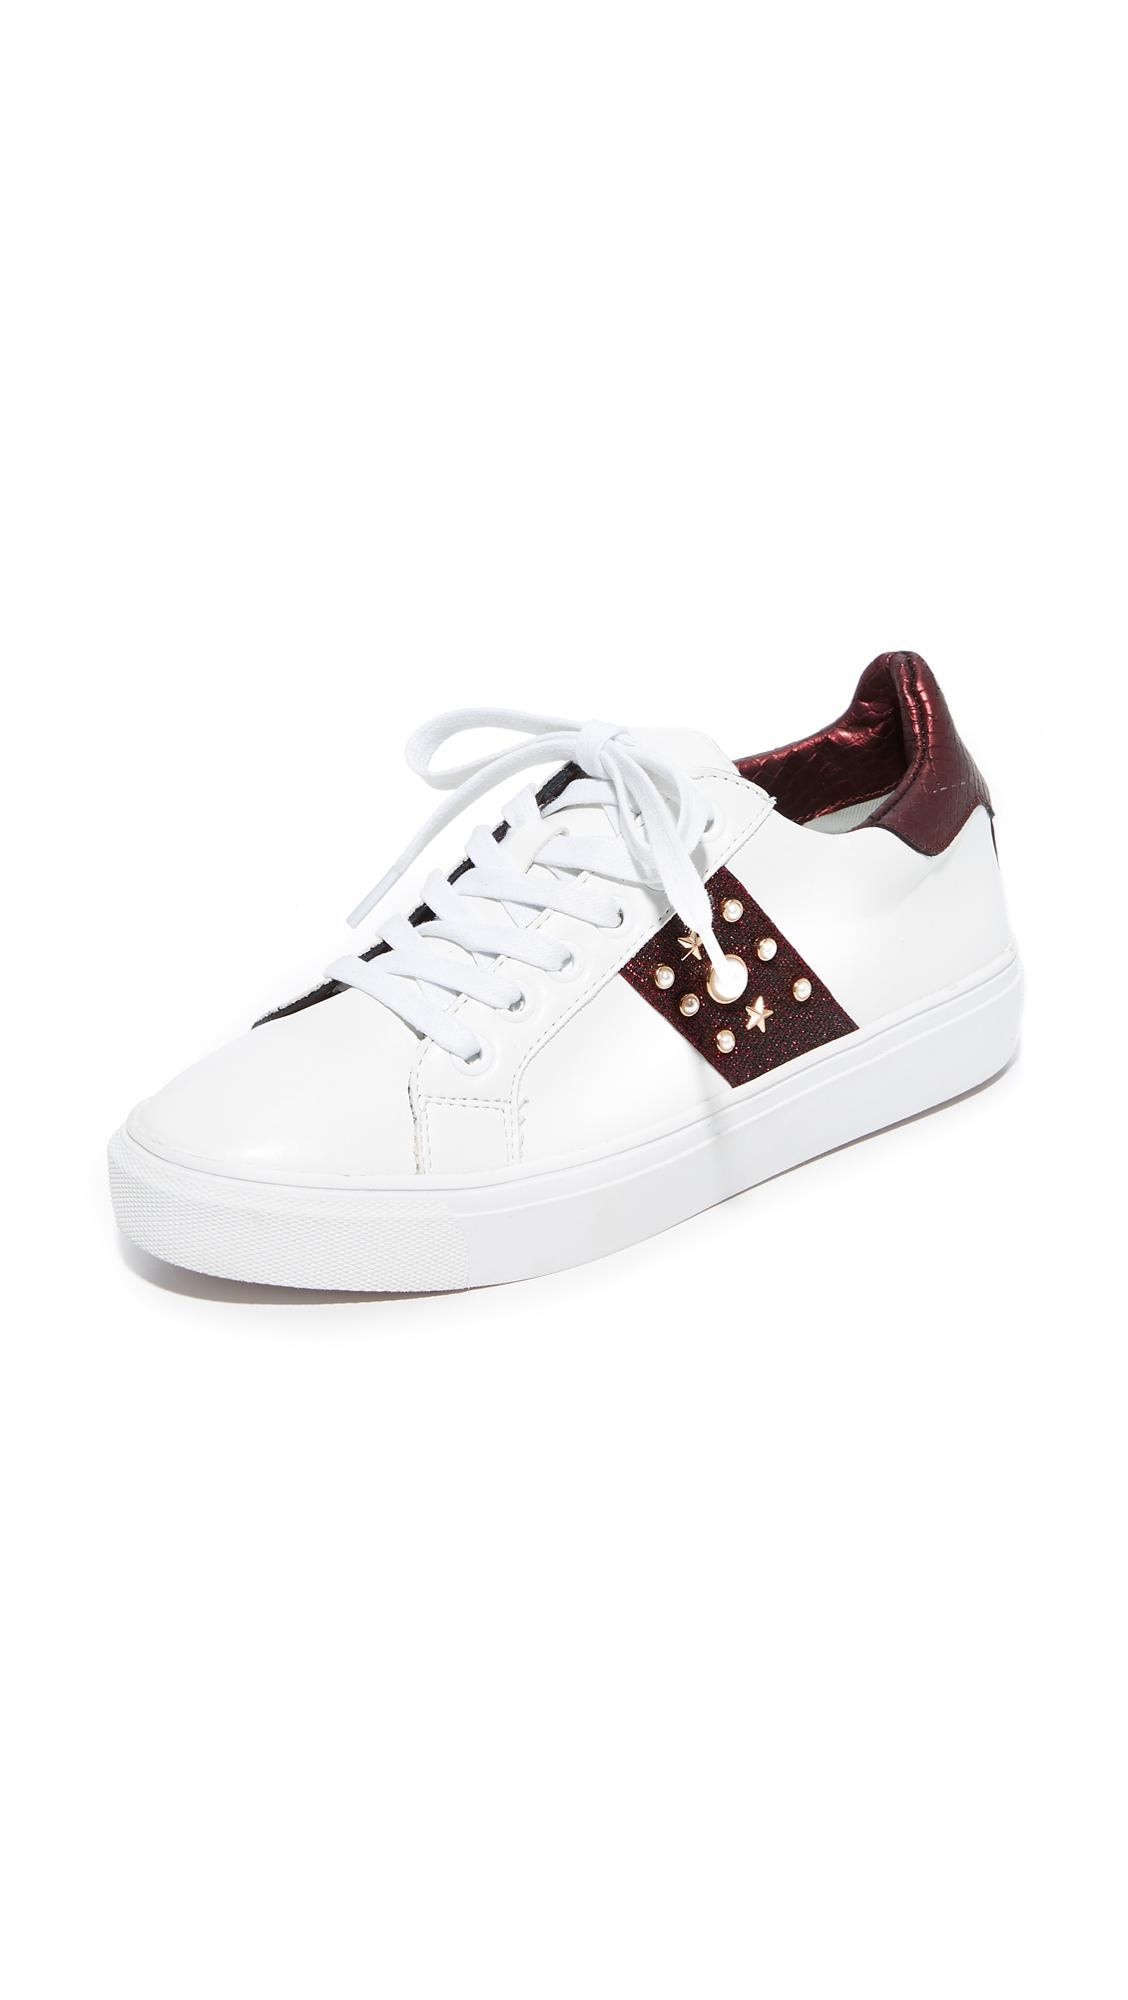 c86c11d6162 Lyst - Steven by Steve Madden Cory Classic Sneakers in White